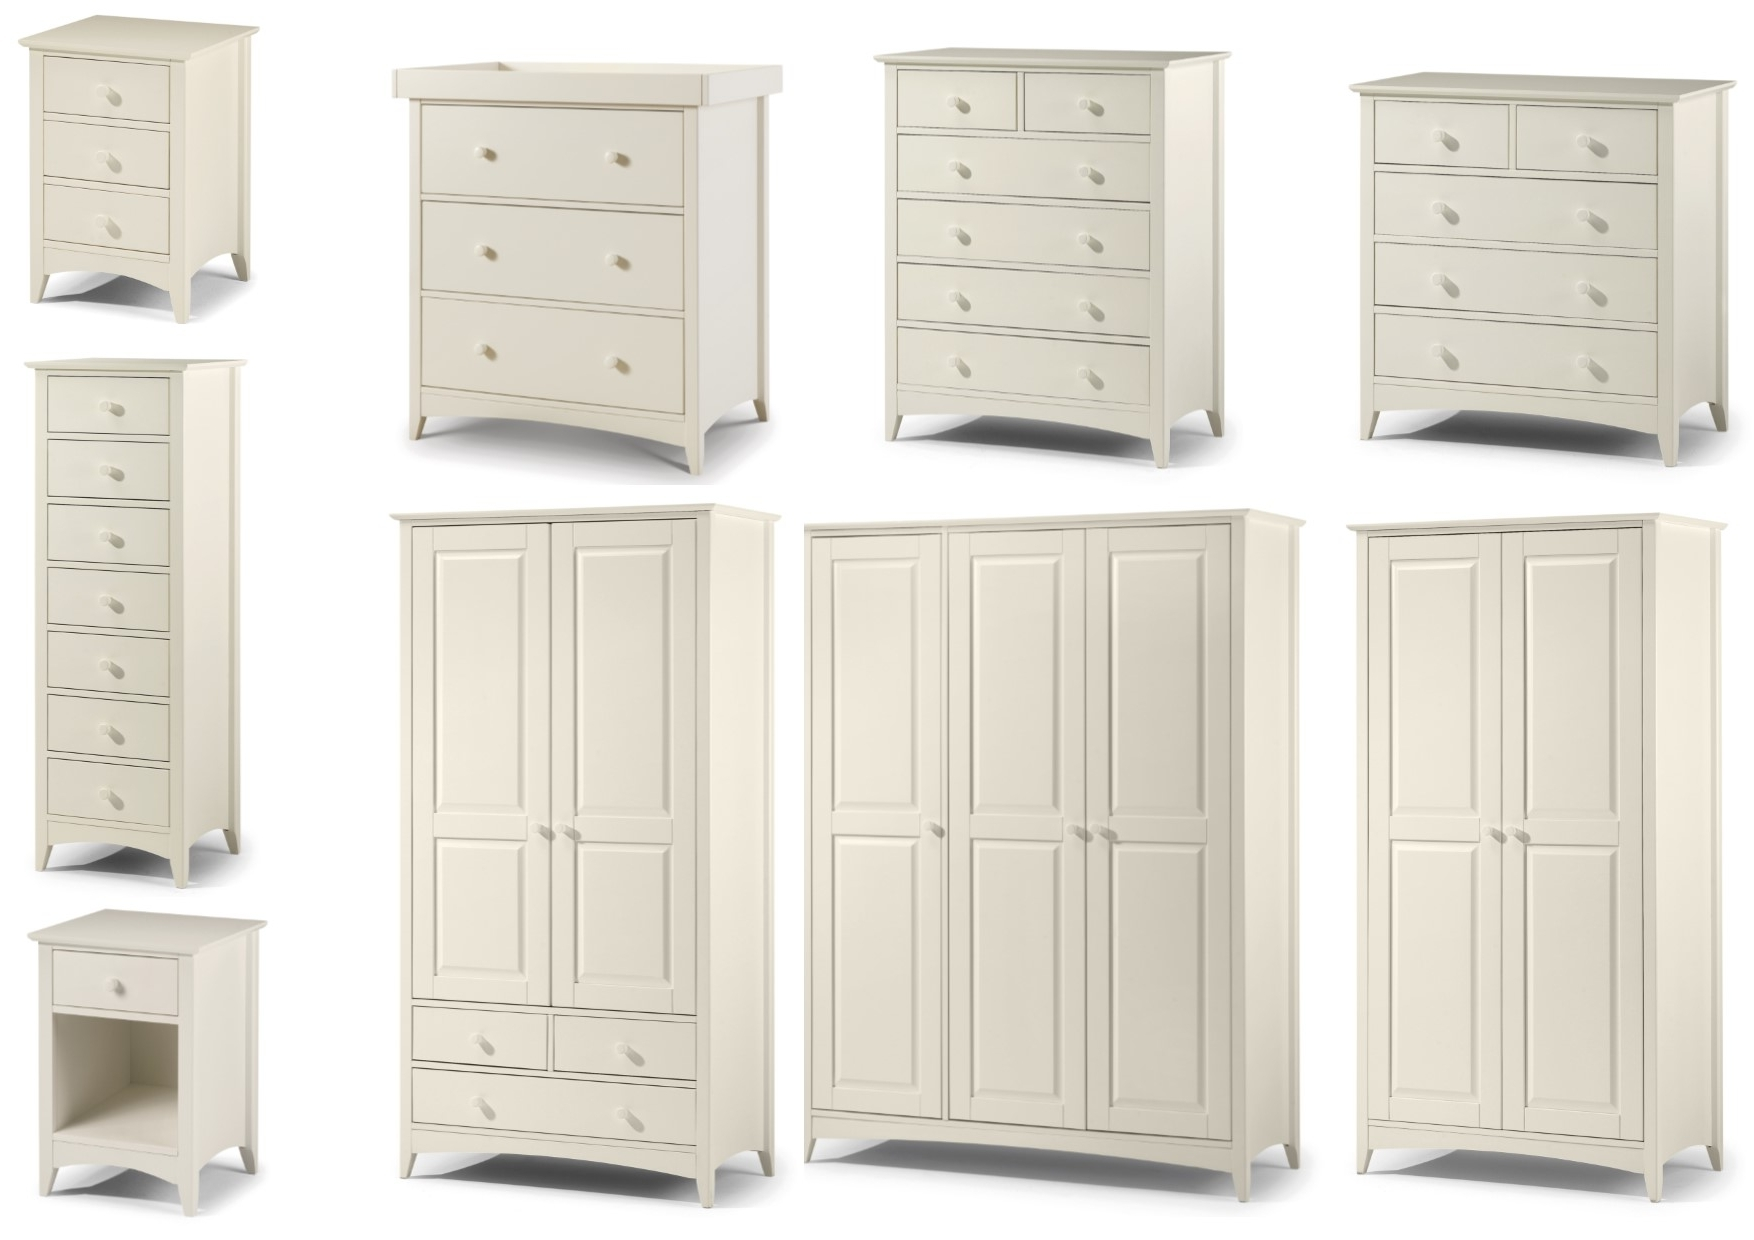 Trendy Julian Bowen Cameo Wardrobes Pertaining To Julian Bowen Cameo Stone White Bedroom Range – Bedside Drawers (View 4 of 15)